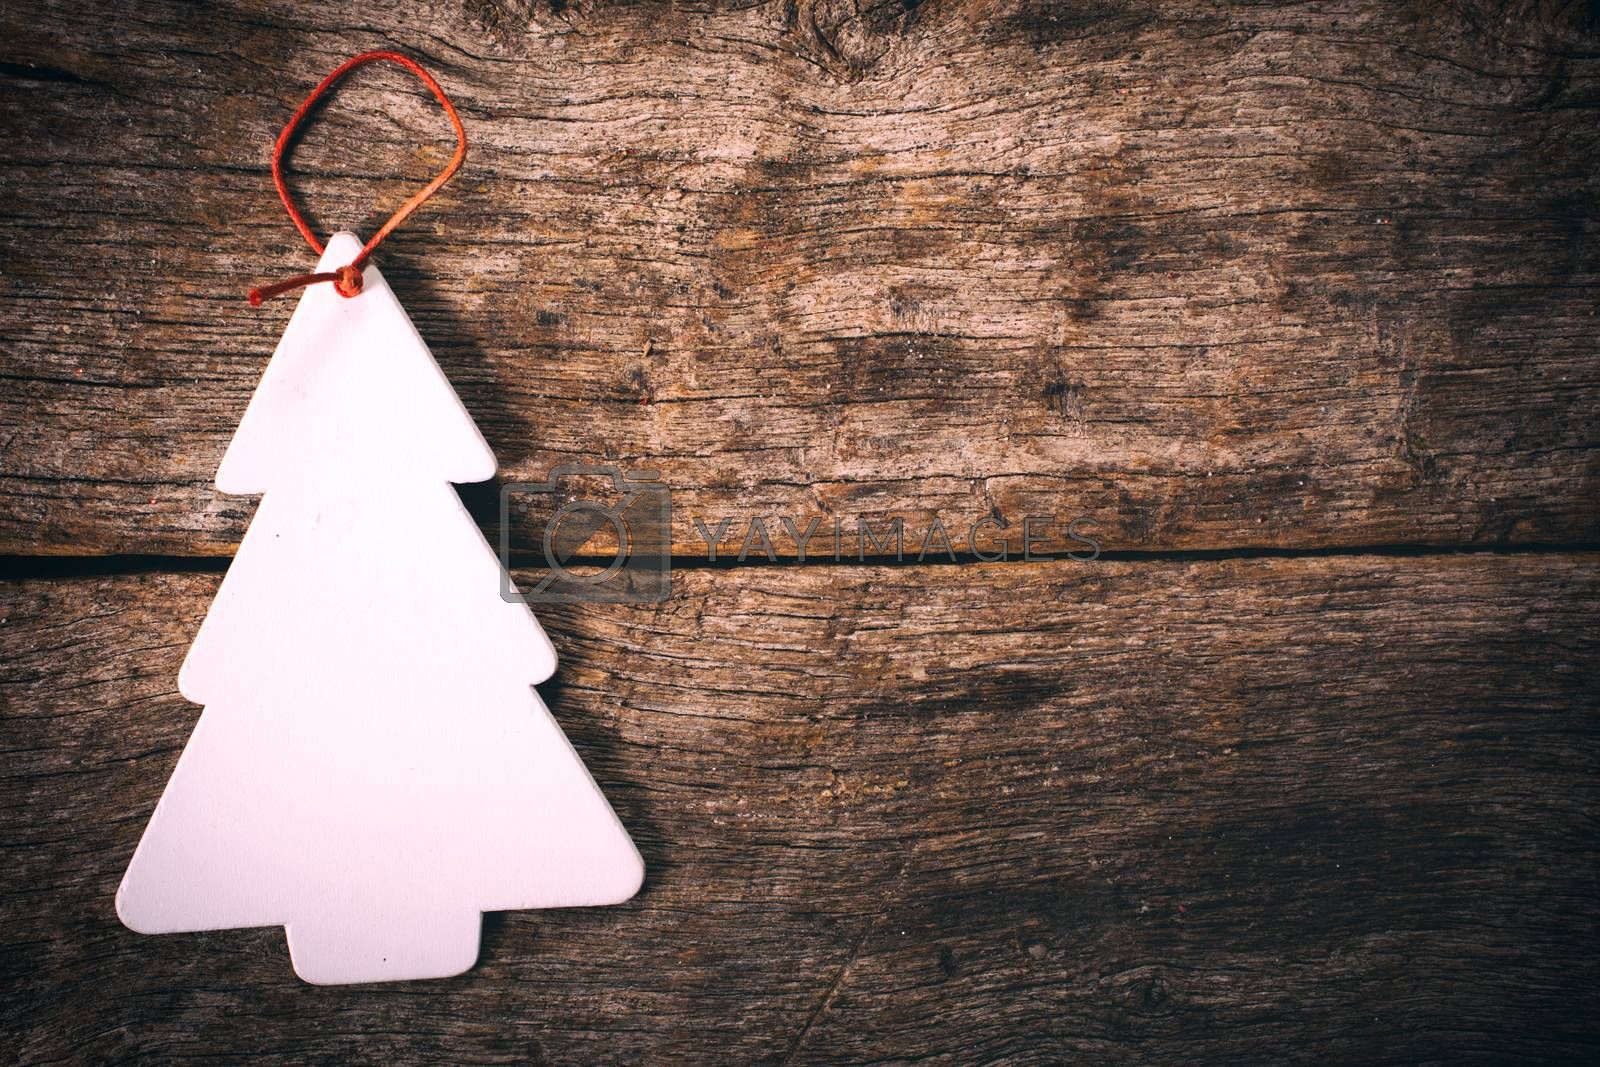 Blank card in shape of Christmas tree on wooden background